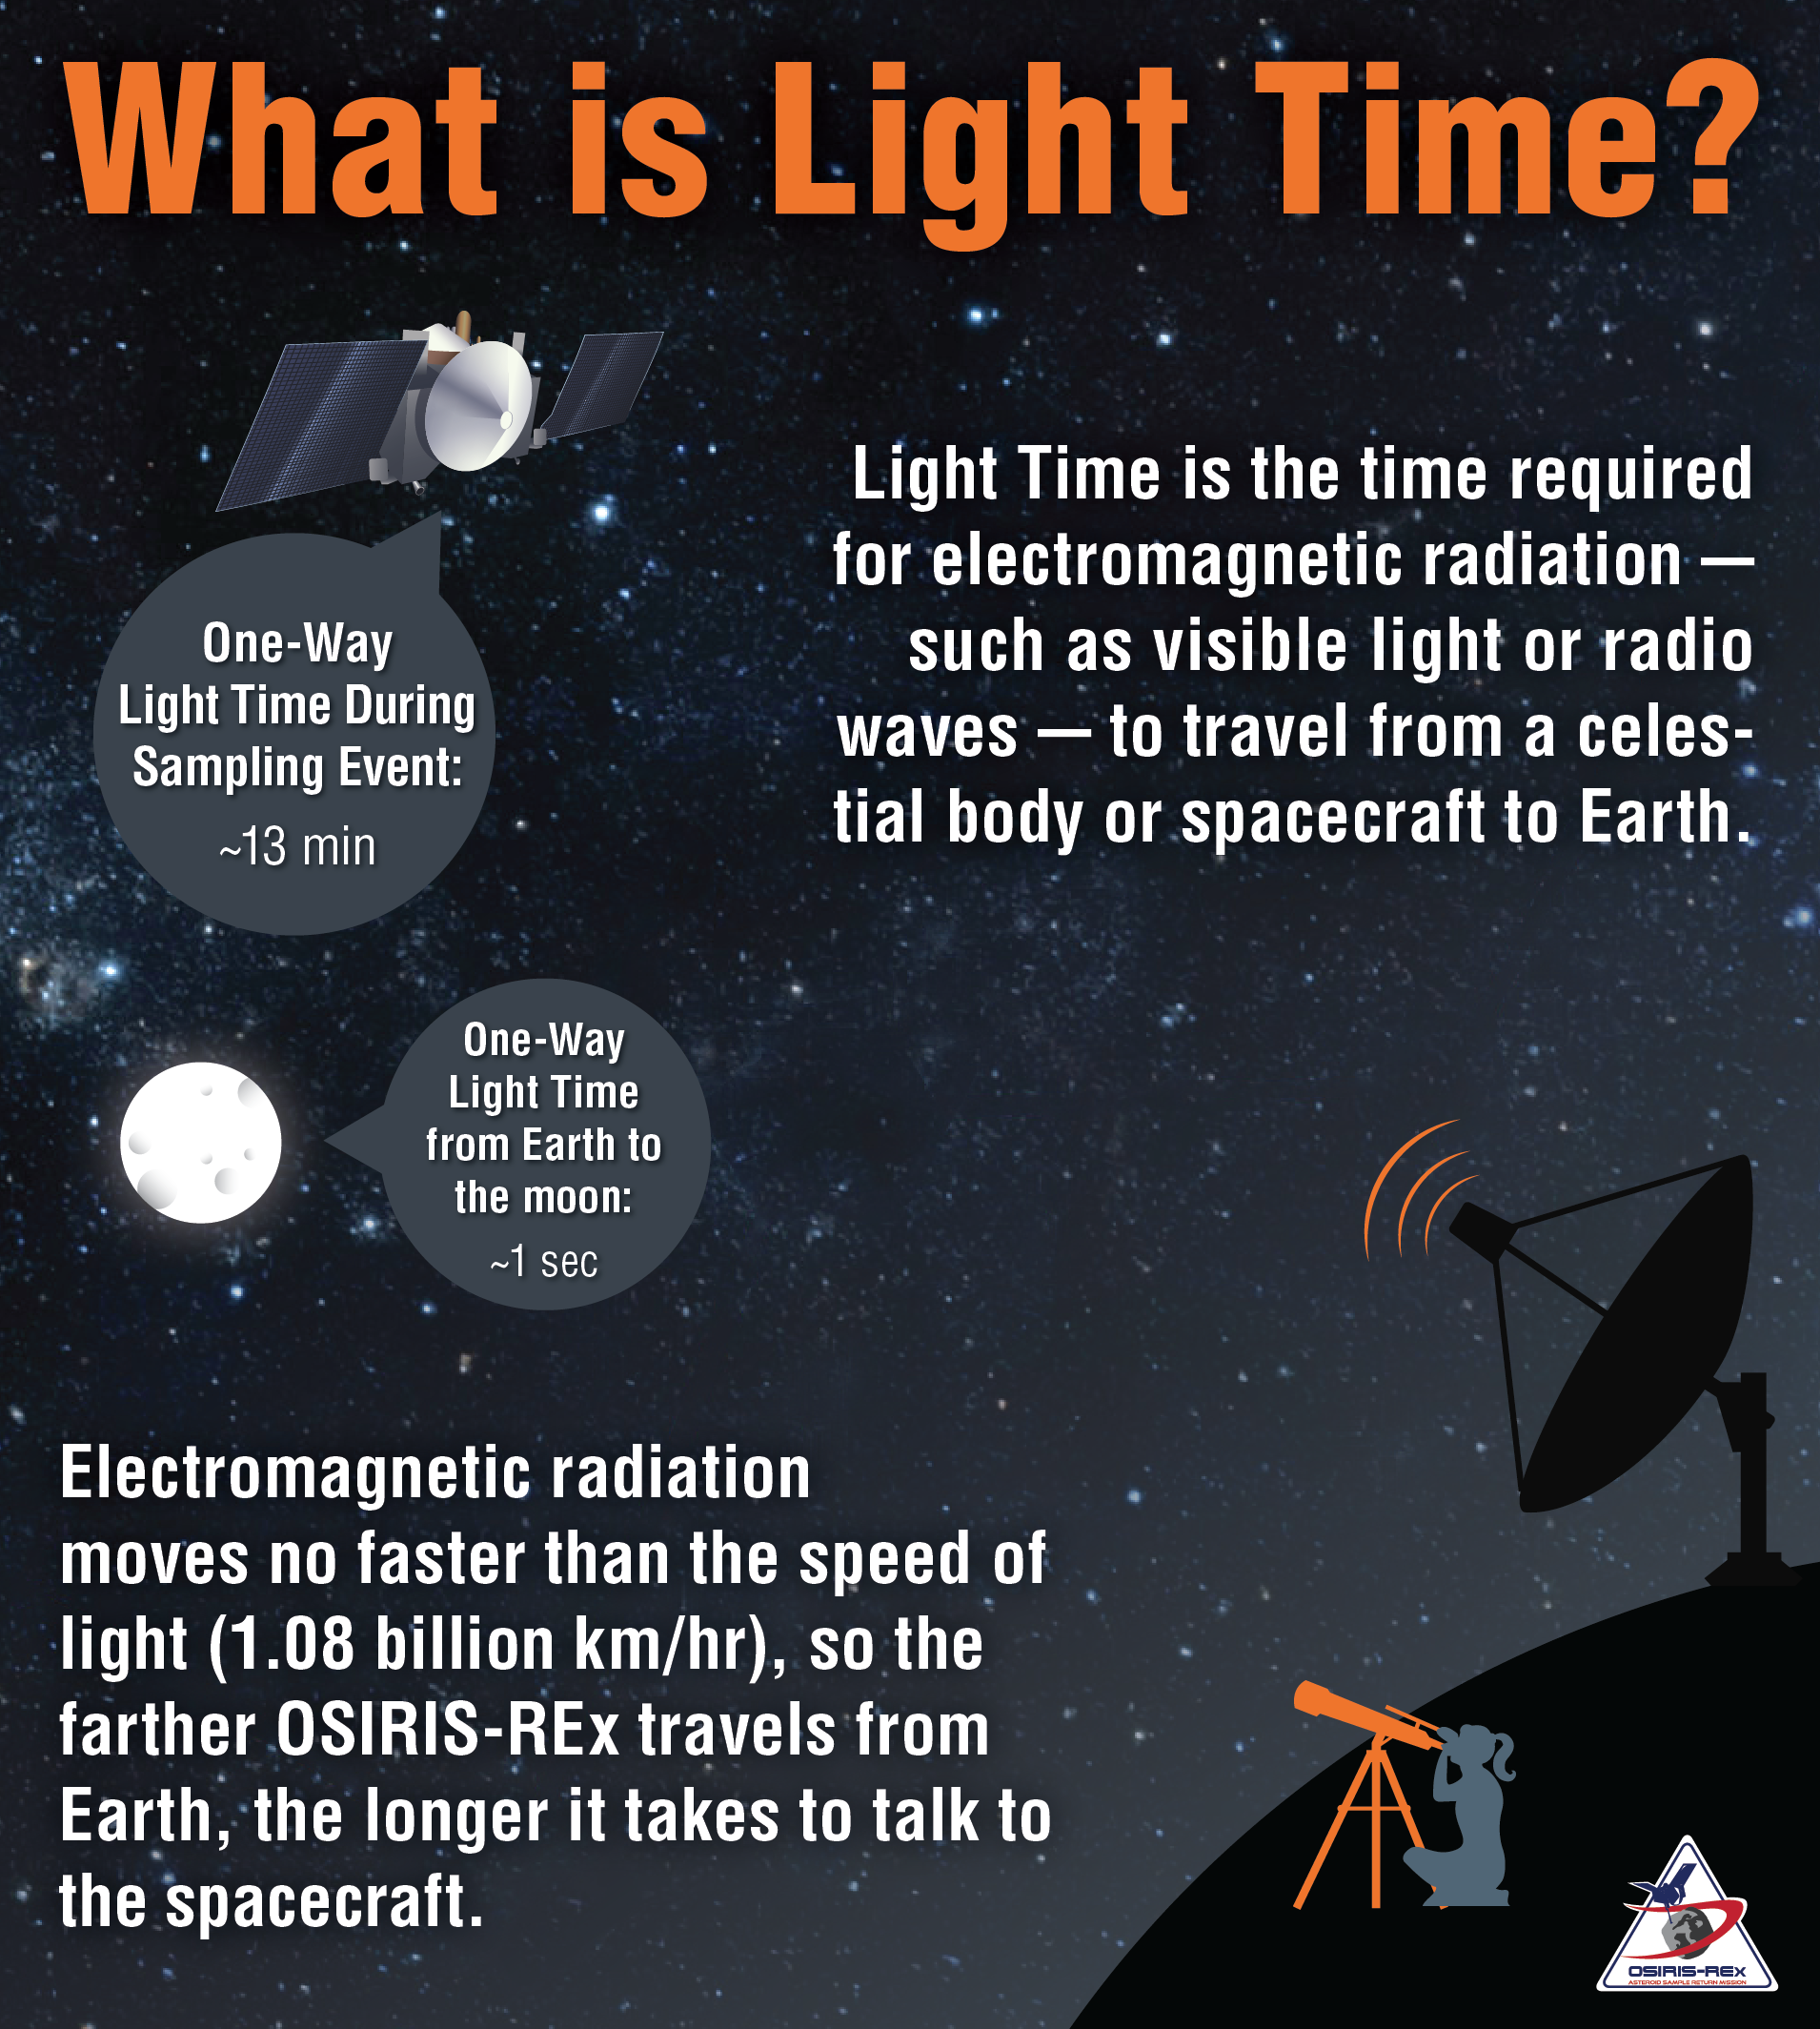 What is light time?